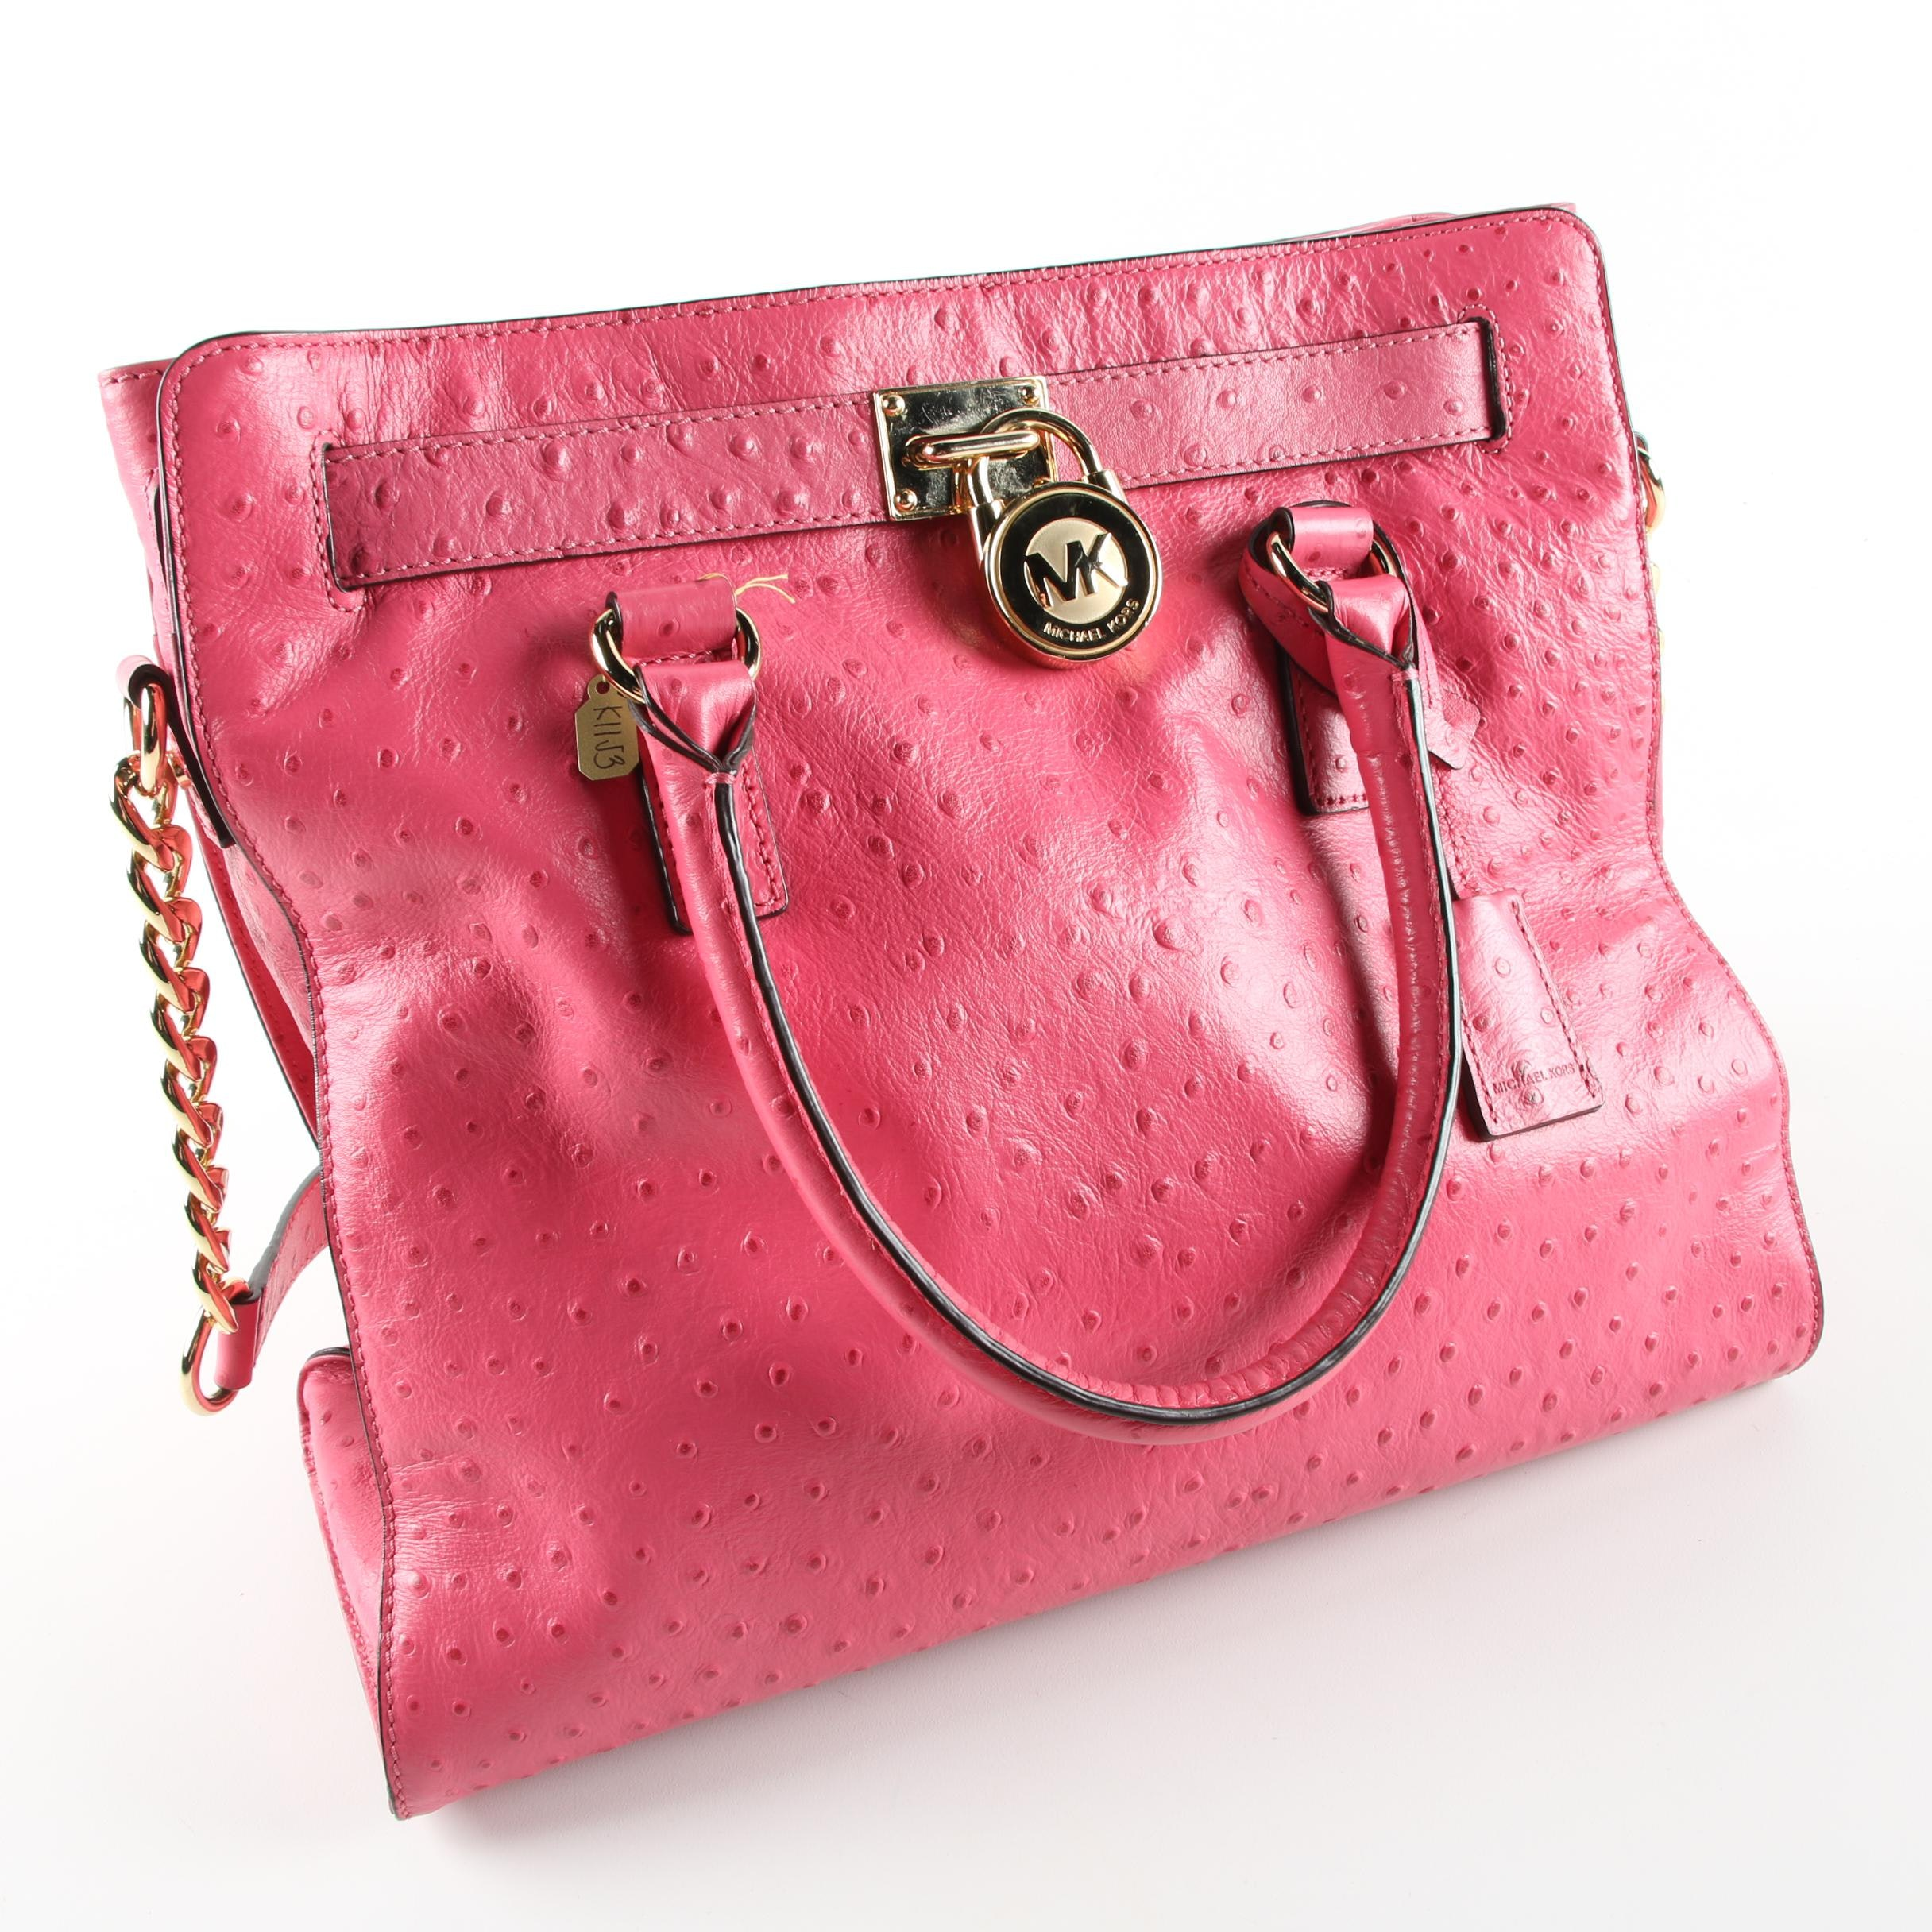 MICHAEL Michael Kors Pink Embossed Ostrich Leather Handbag